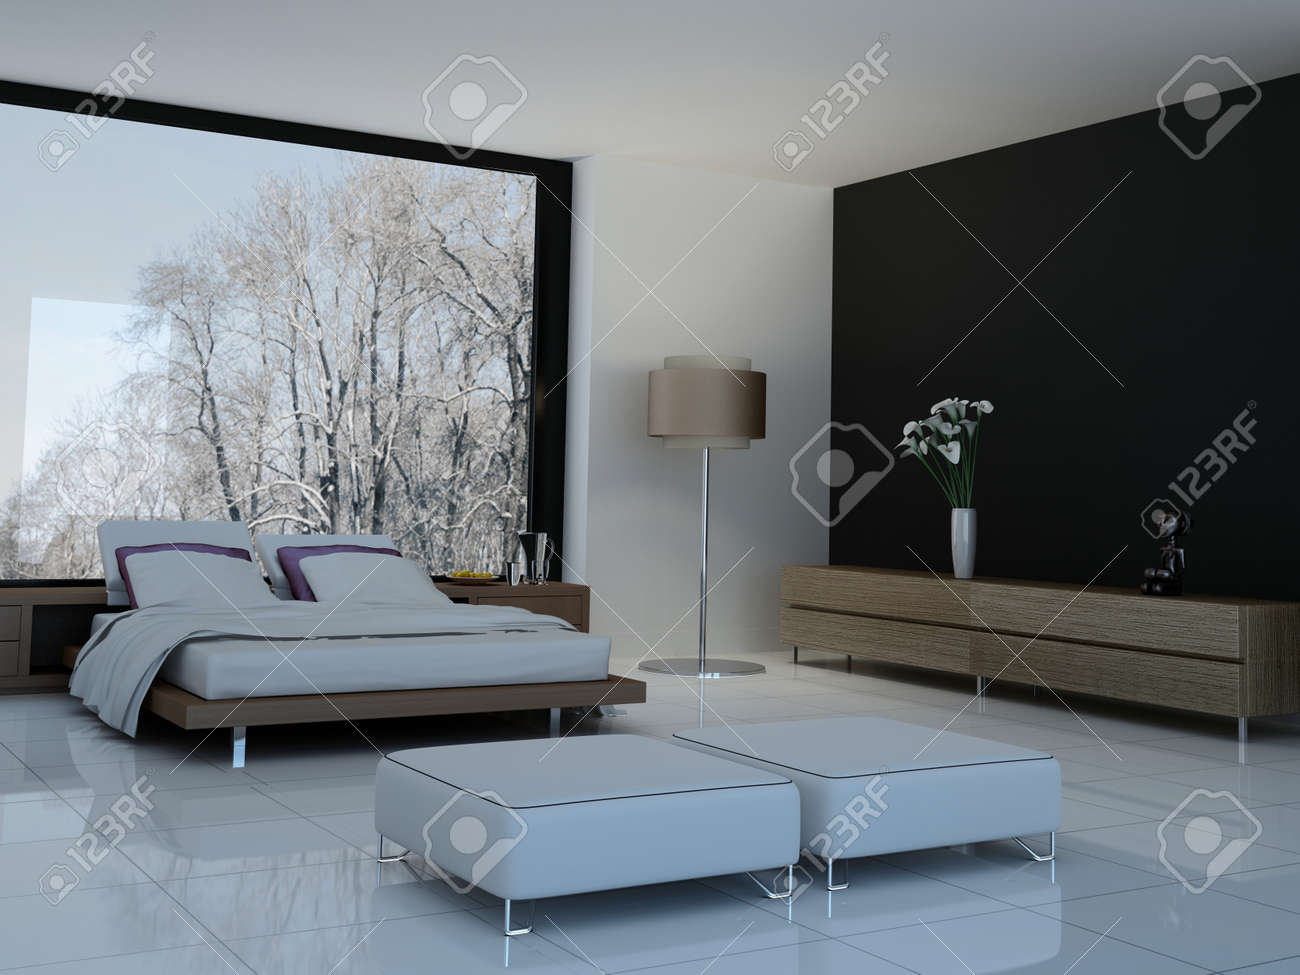 Ultramodern bedroom interior with double bed against panorama windows Stock  Photo   32226348. Ultramodern Bedroom Interior With Double Bed Against Panorama